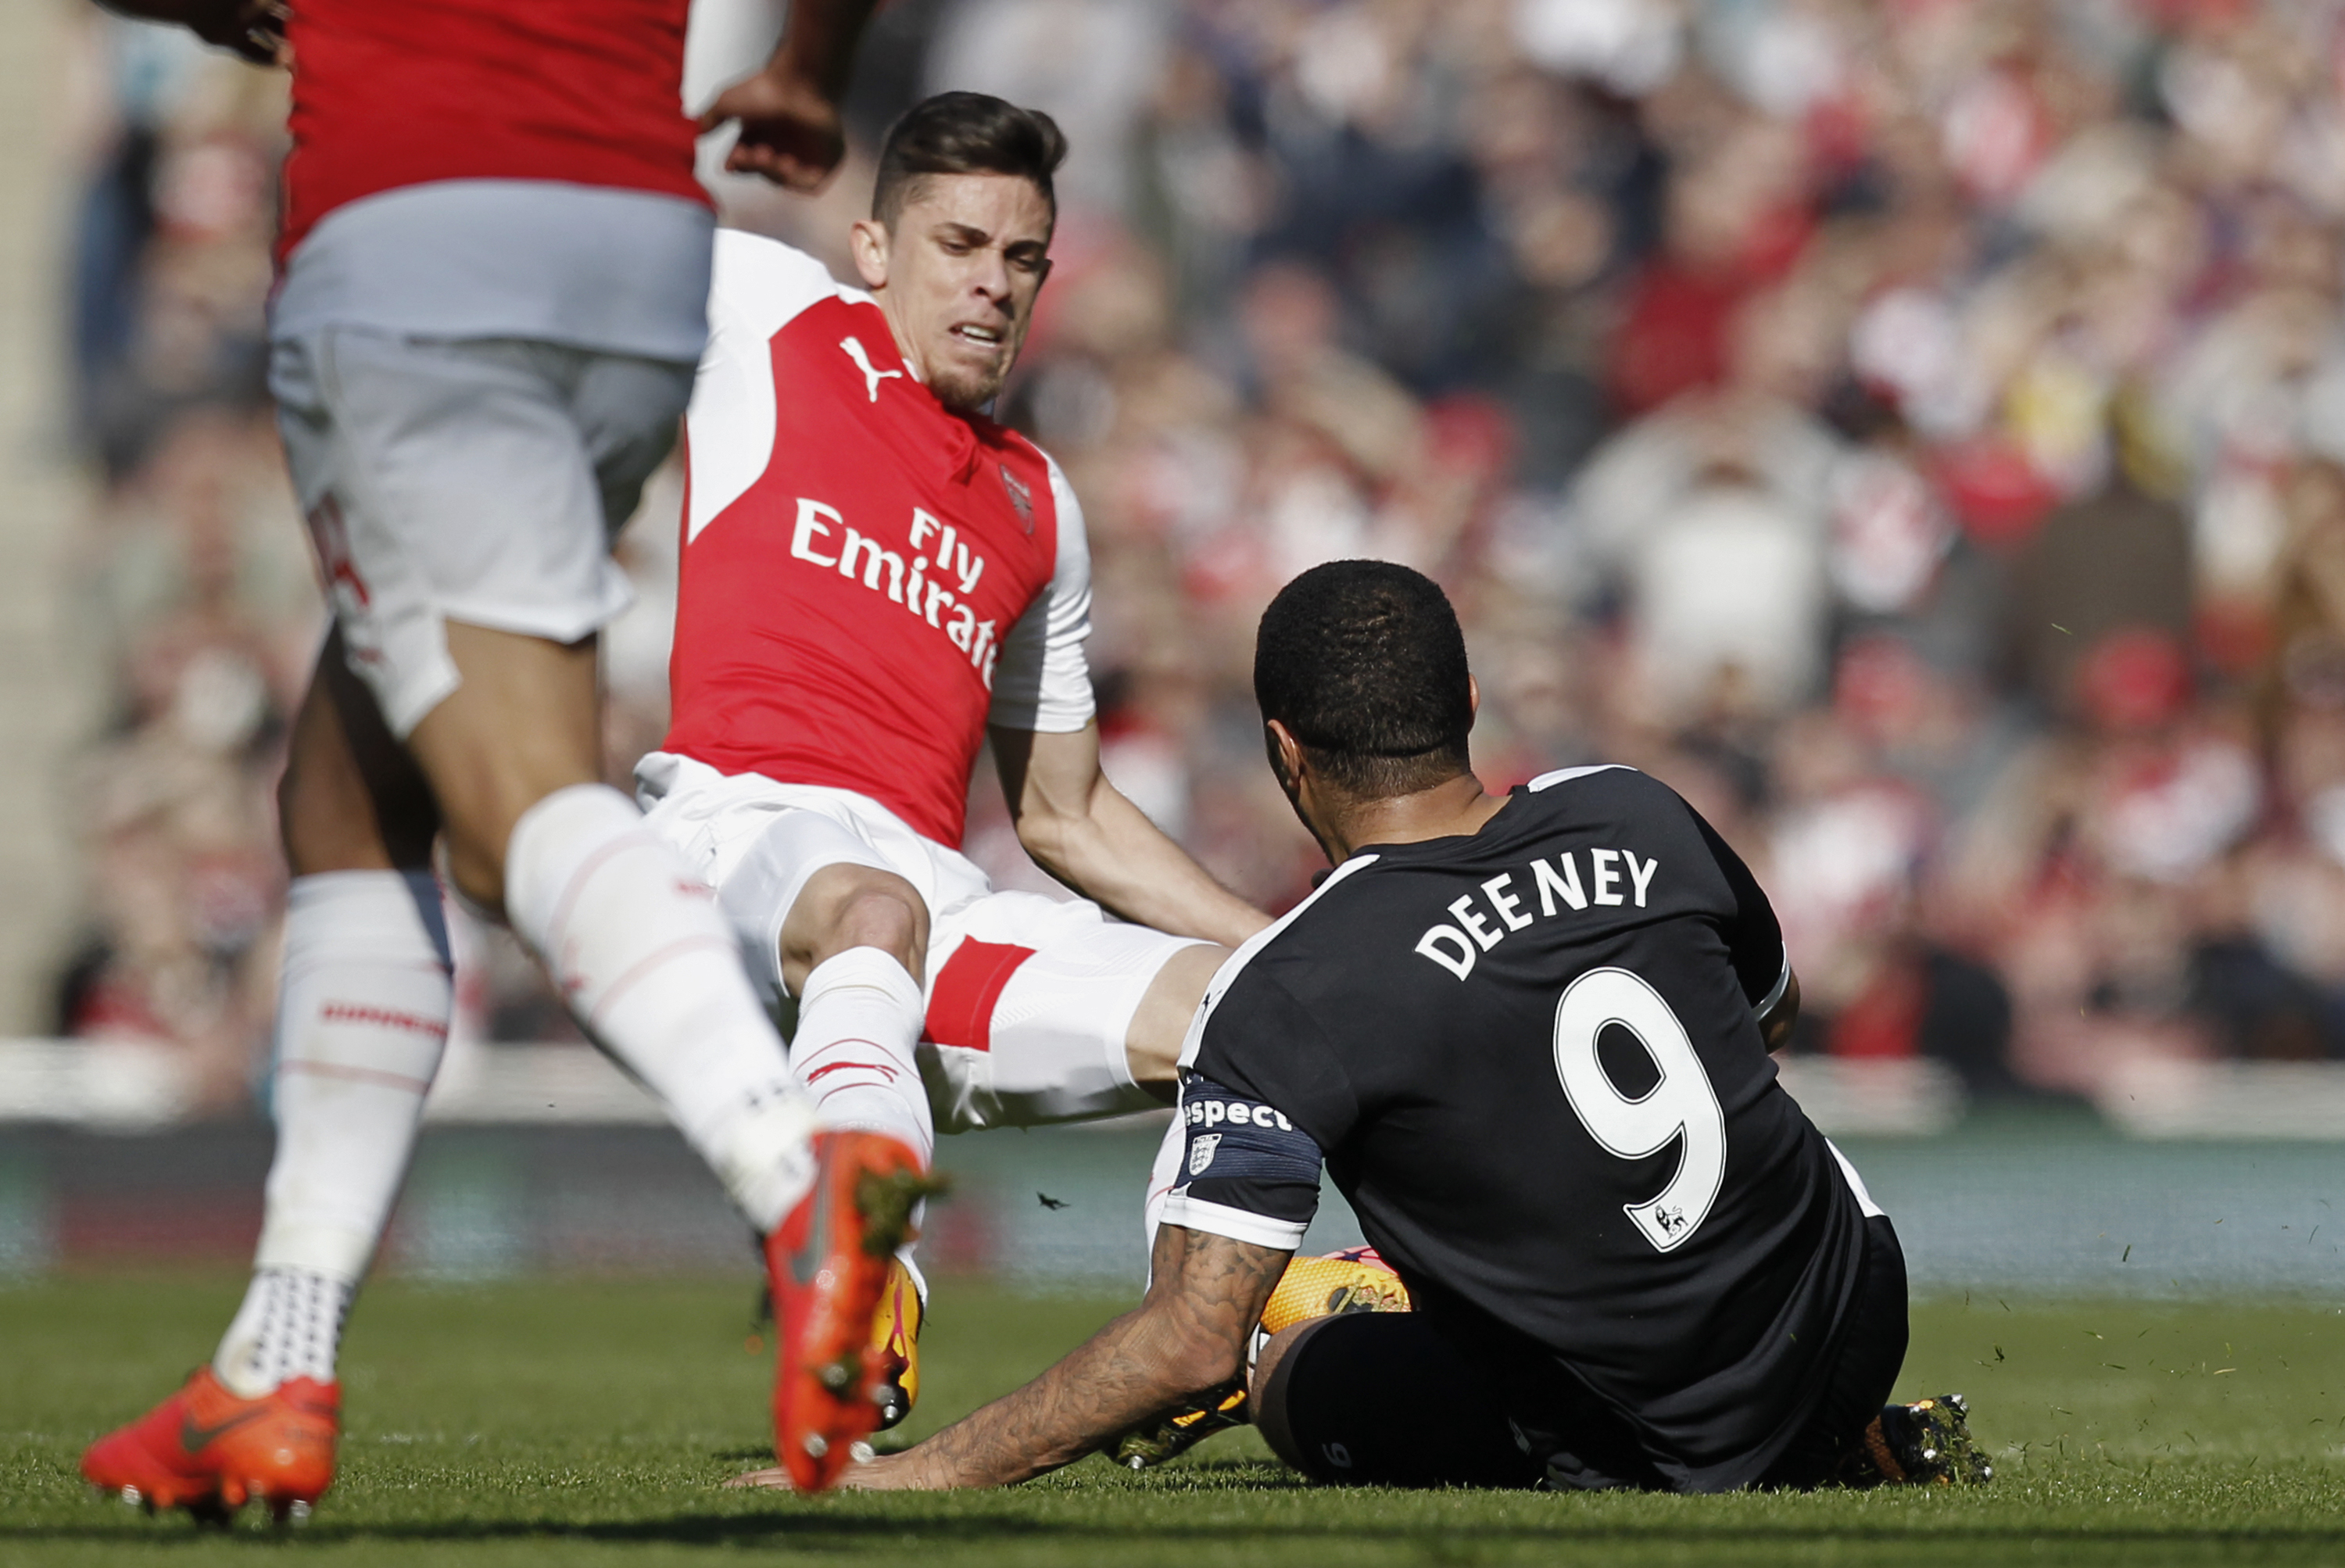 Arsenal's Gabriel Paulista will not face a ban after horror tackle on Watford's Troy Deeney